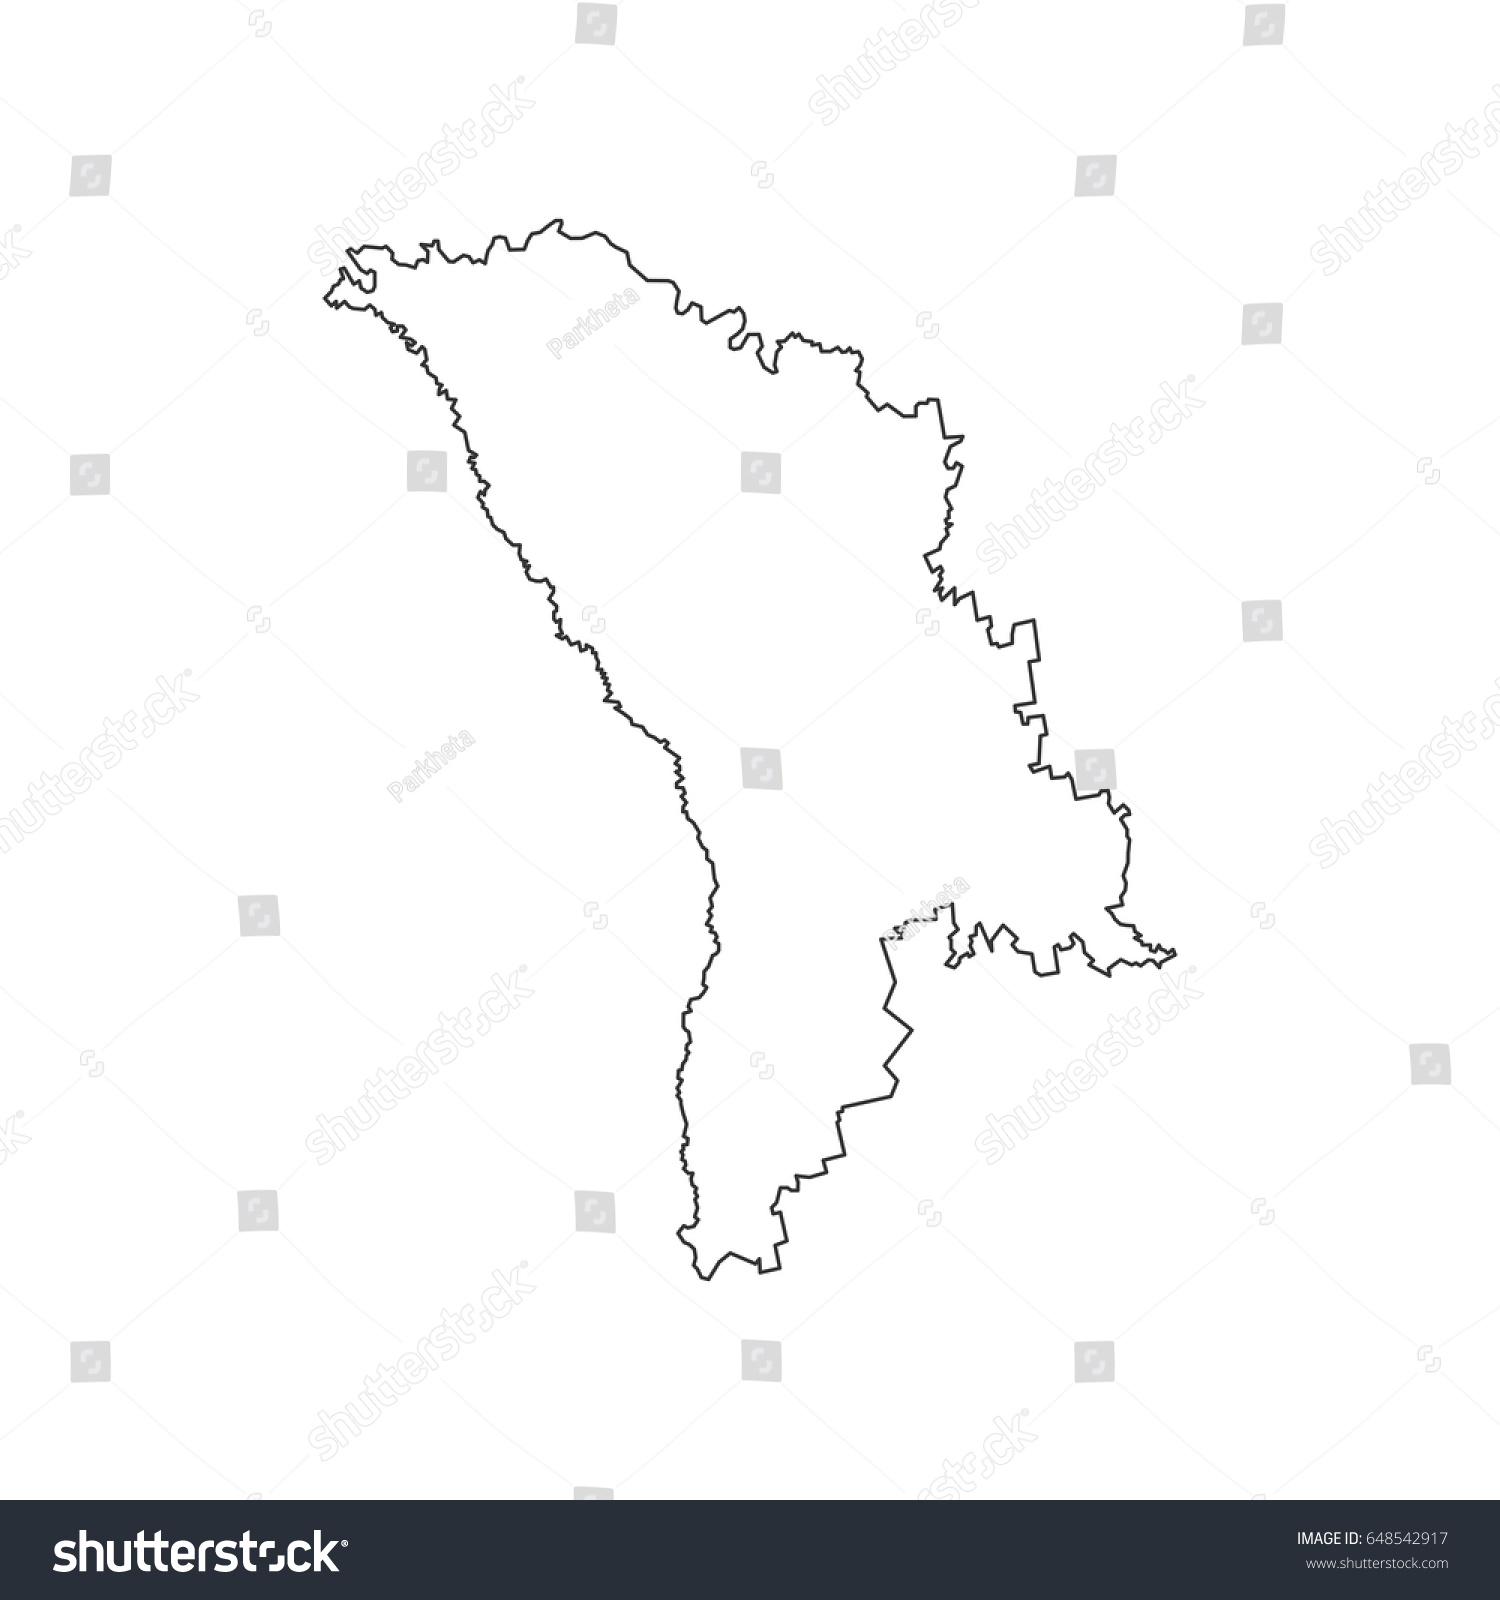 Moldova Map On White Background Vector Stock Vector - Moldova map vector